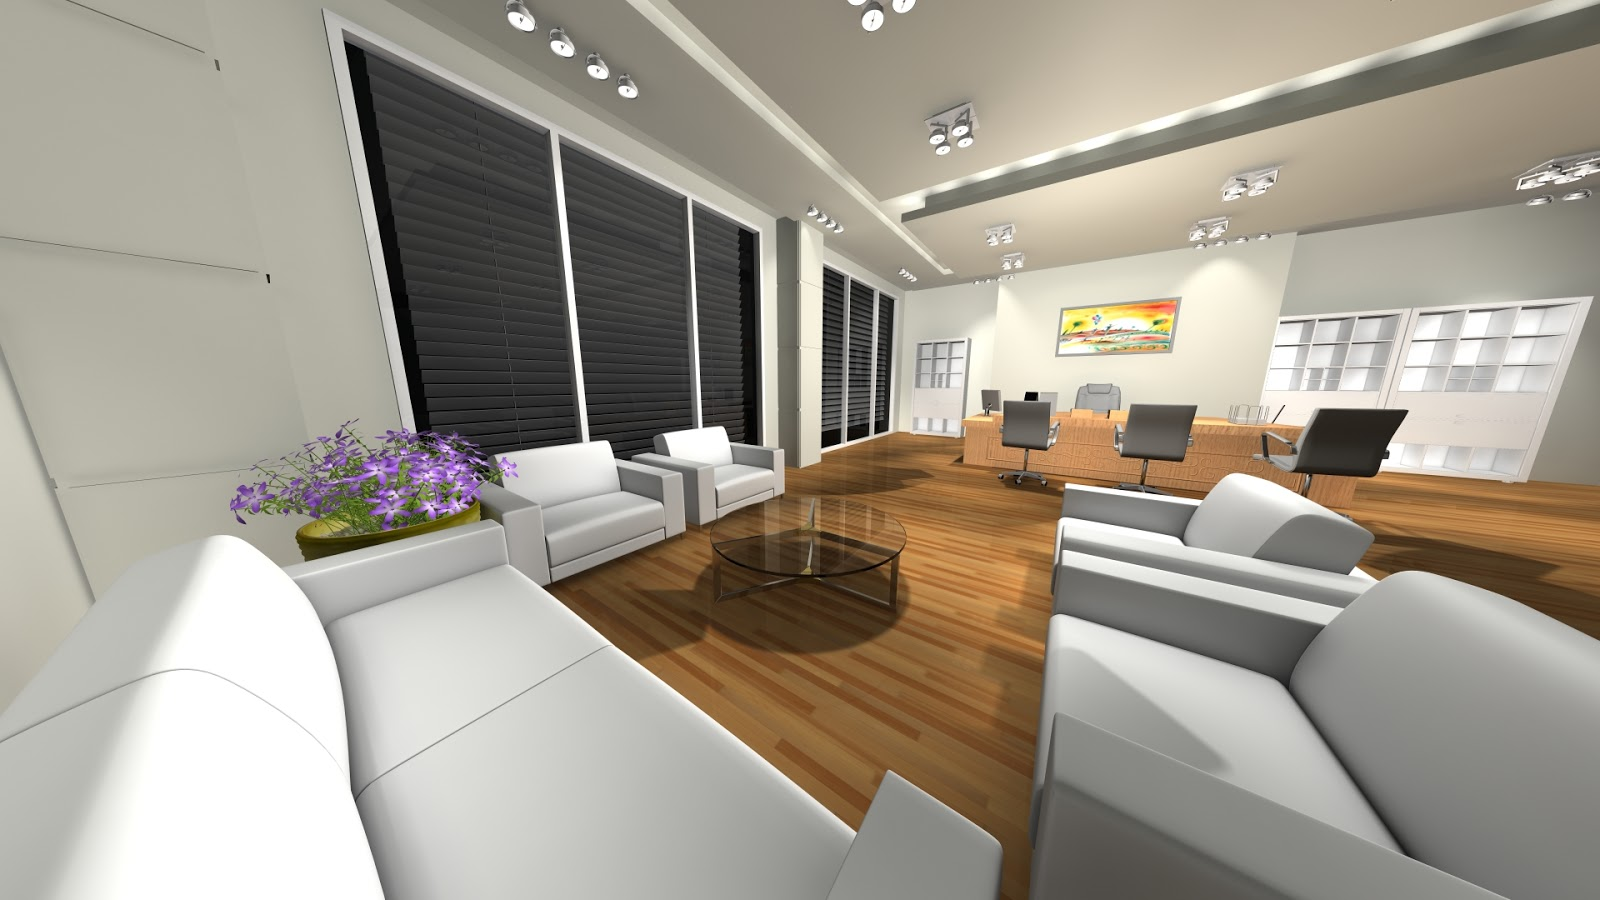 Sajid designer office room 3d interior design 3ds max for Indoor design